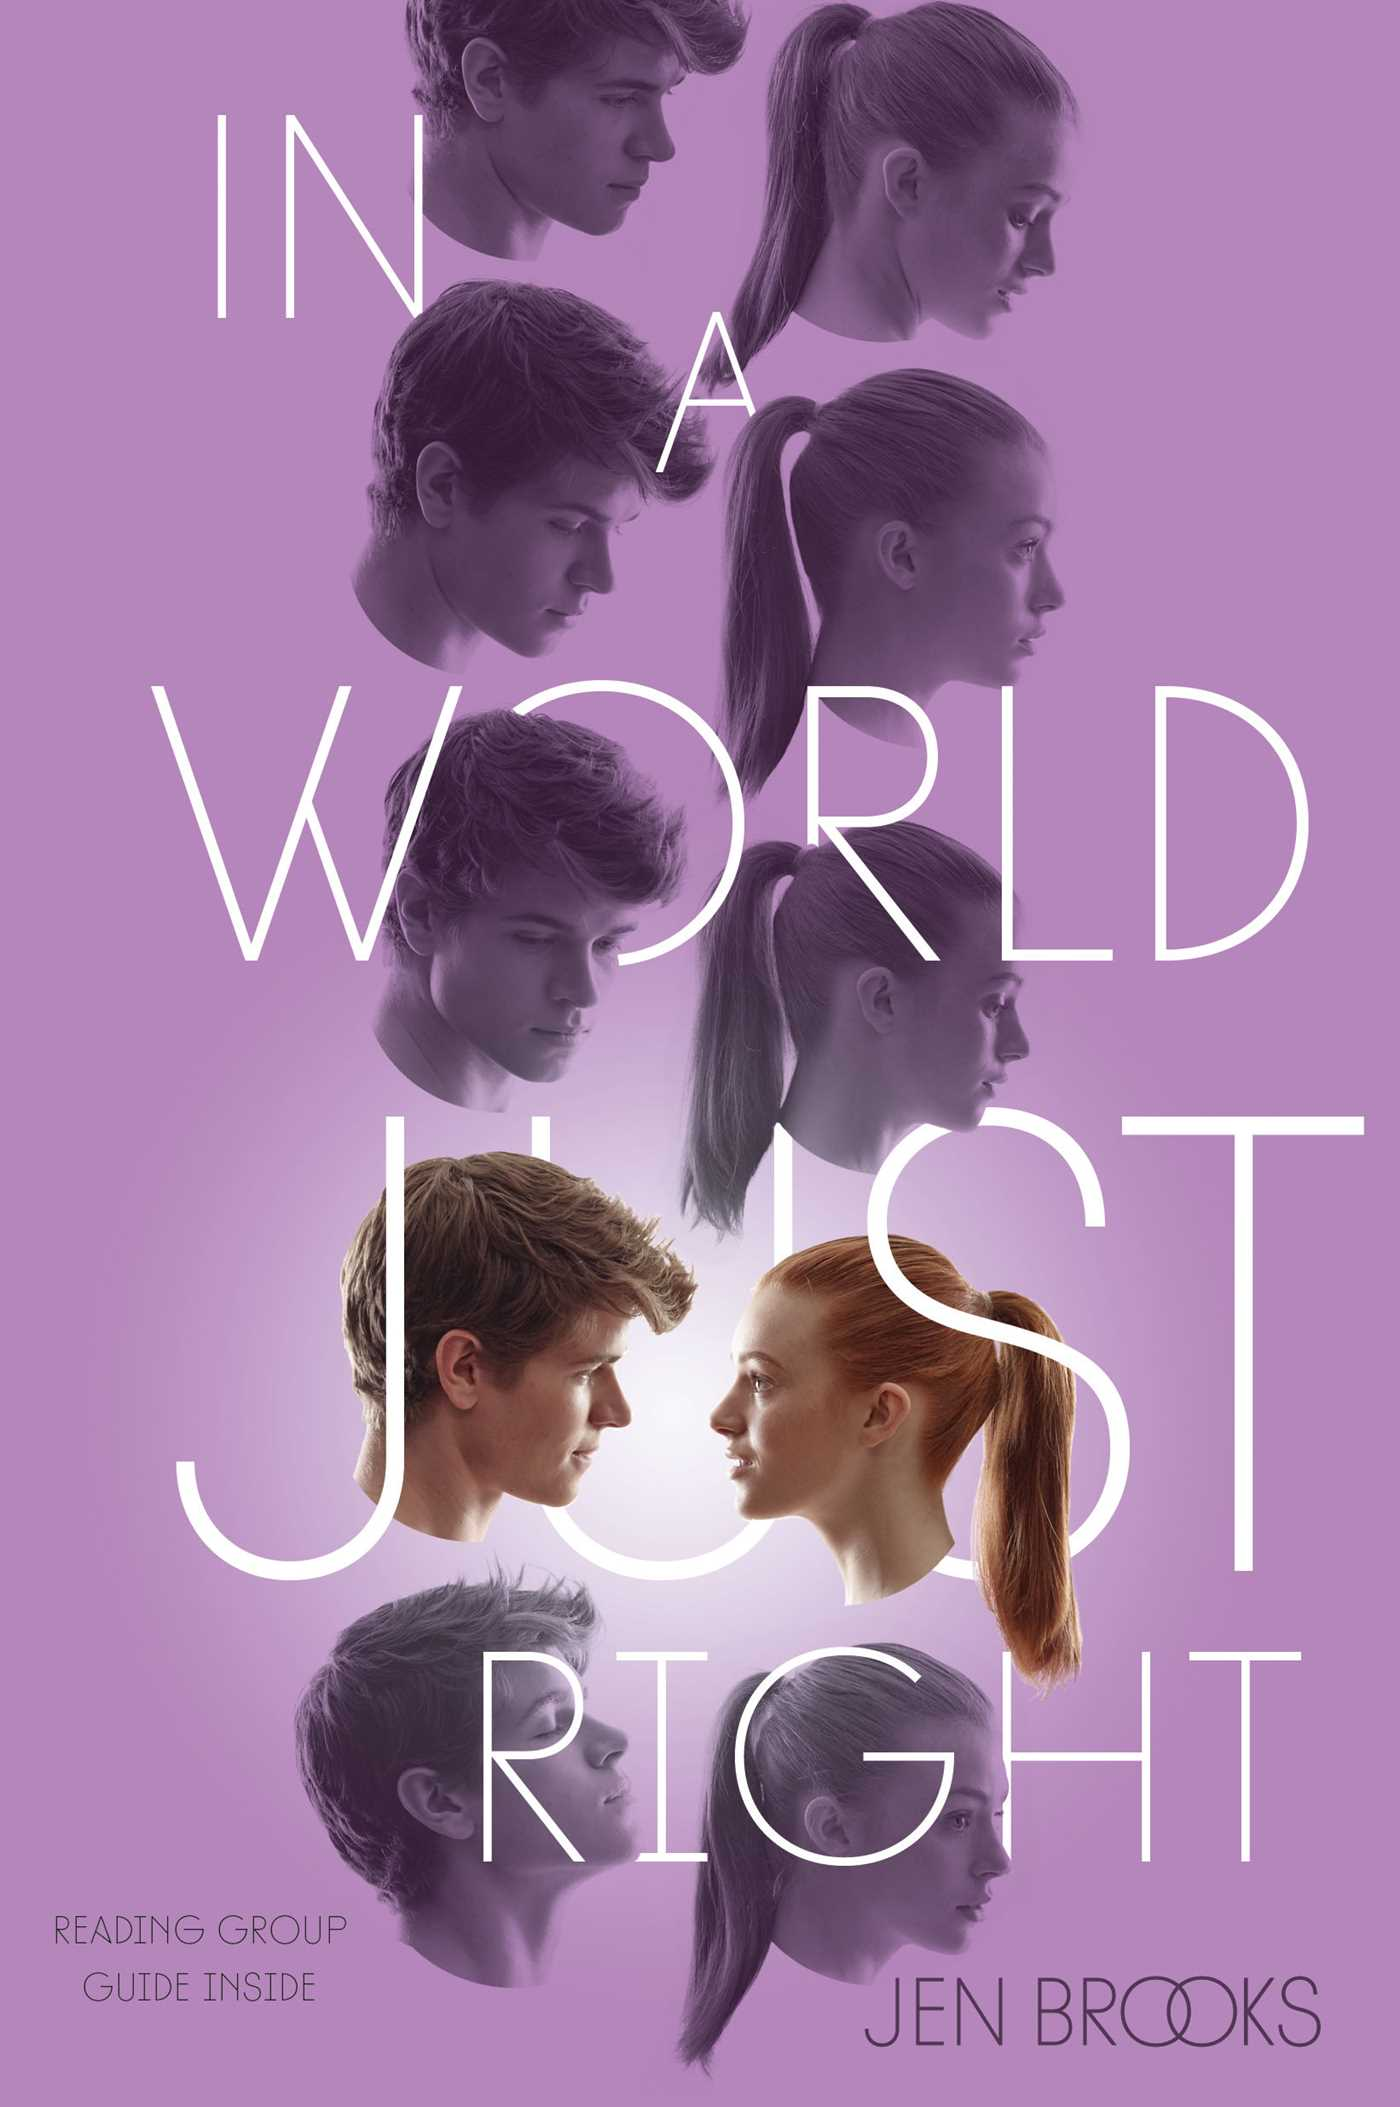 In a world just right 9781481416610 hr